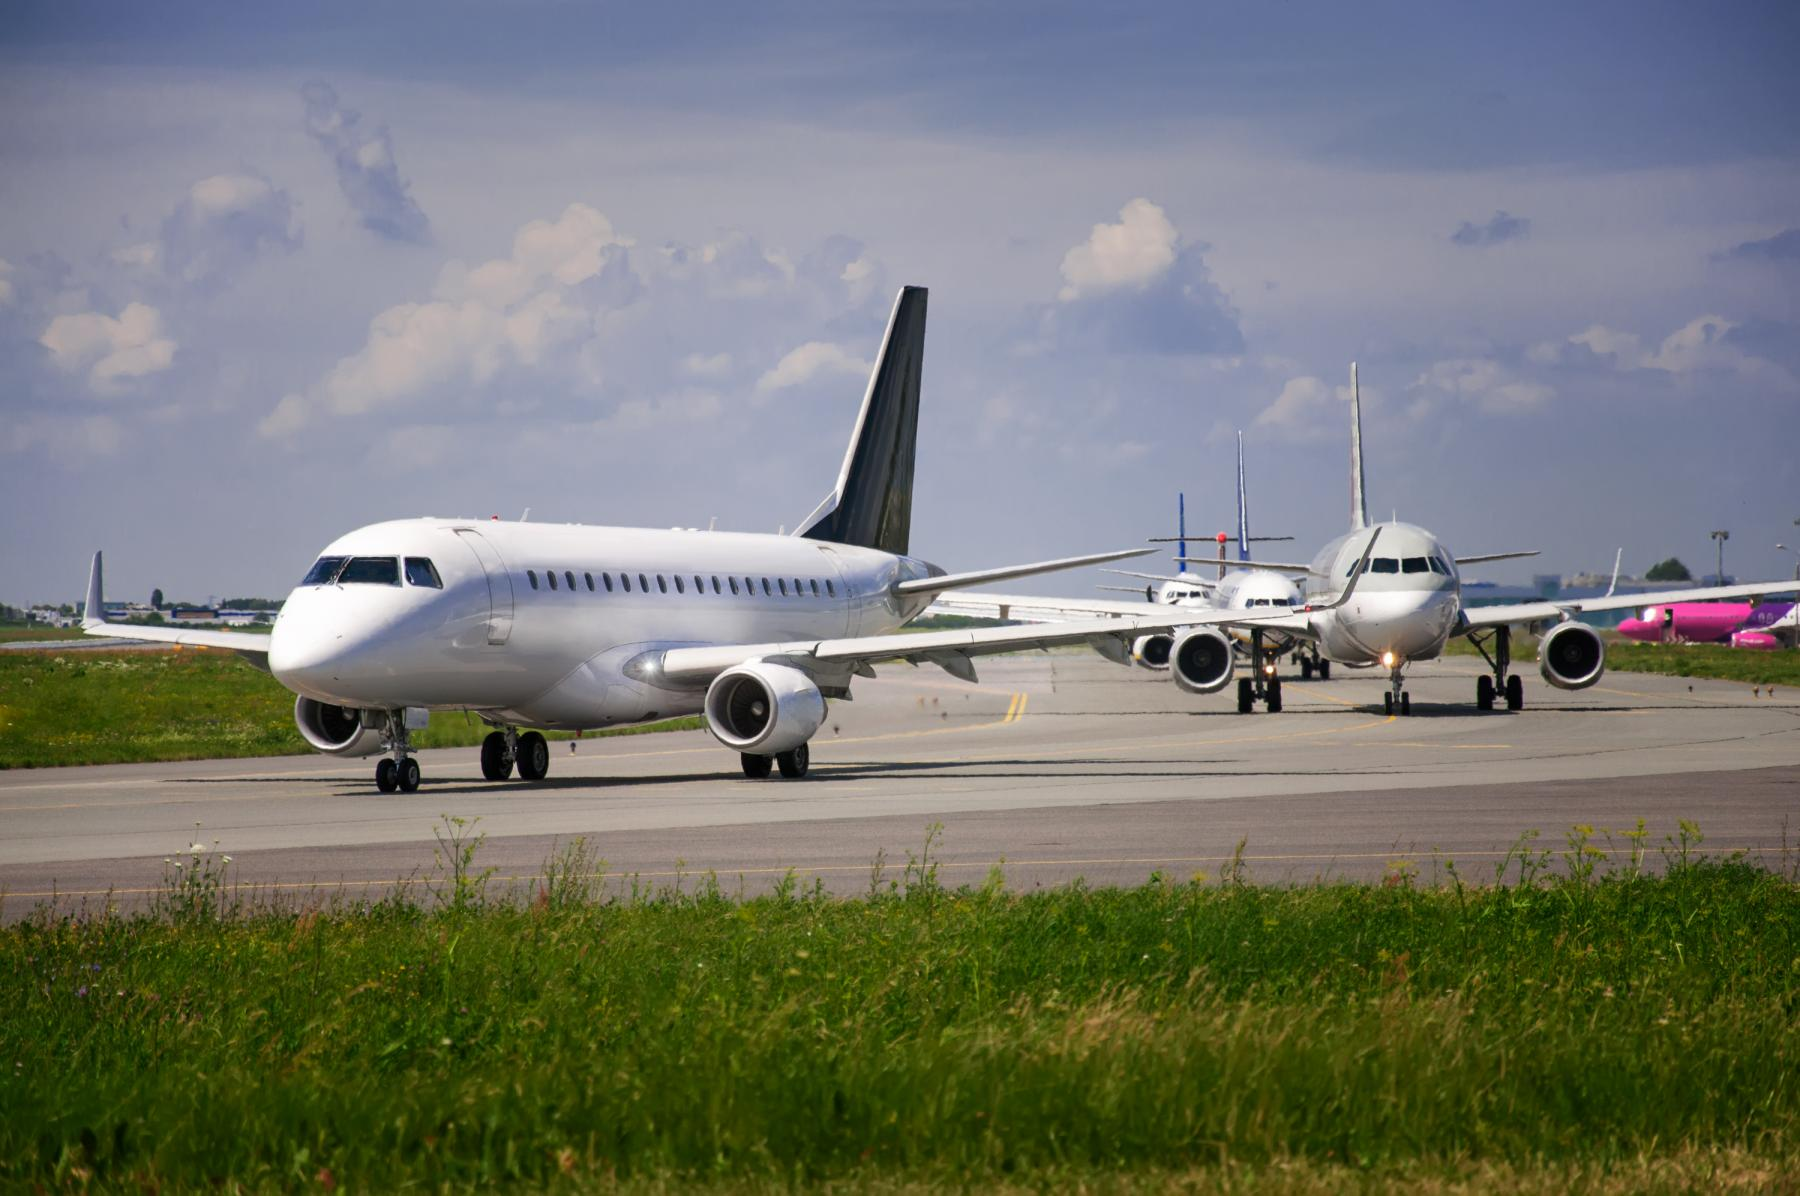 Planes on a crowded runway